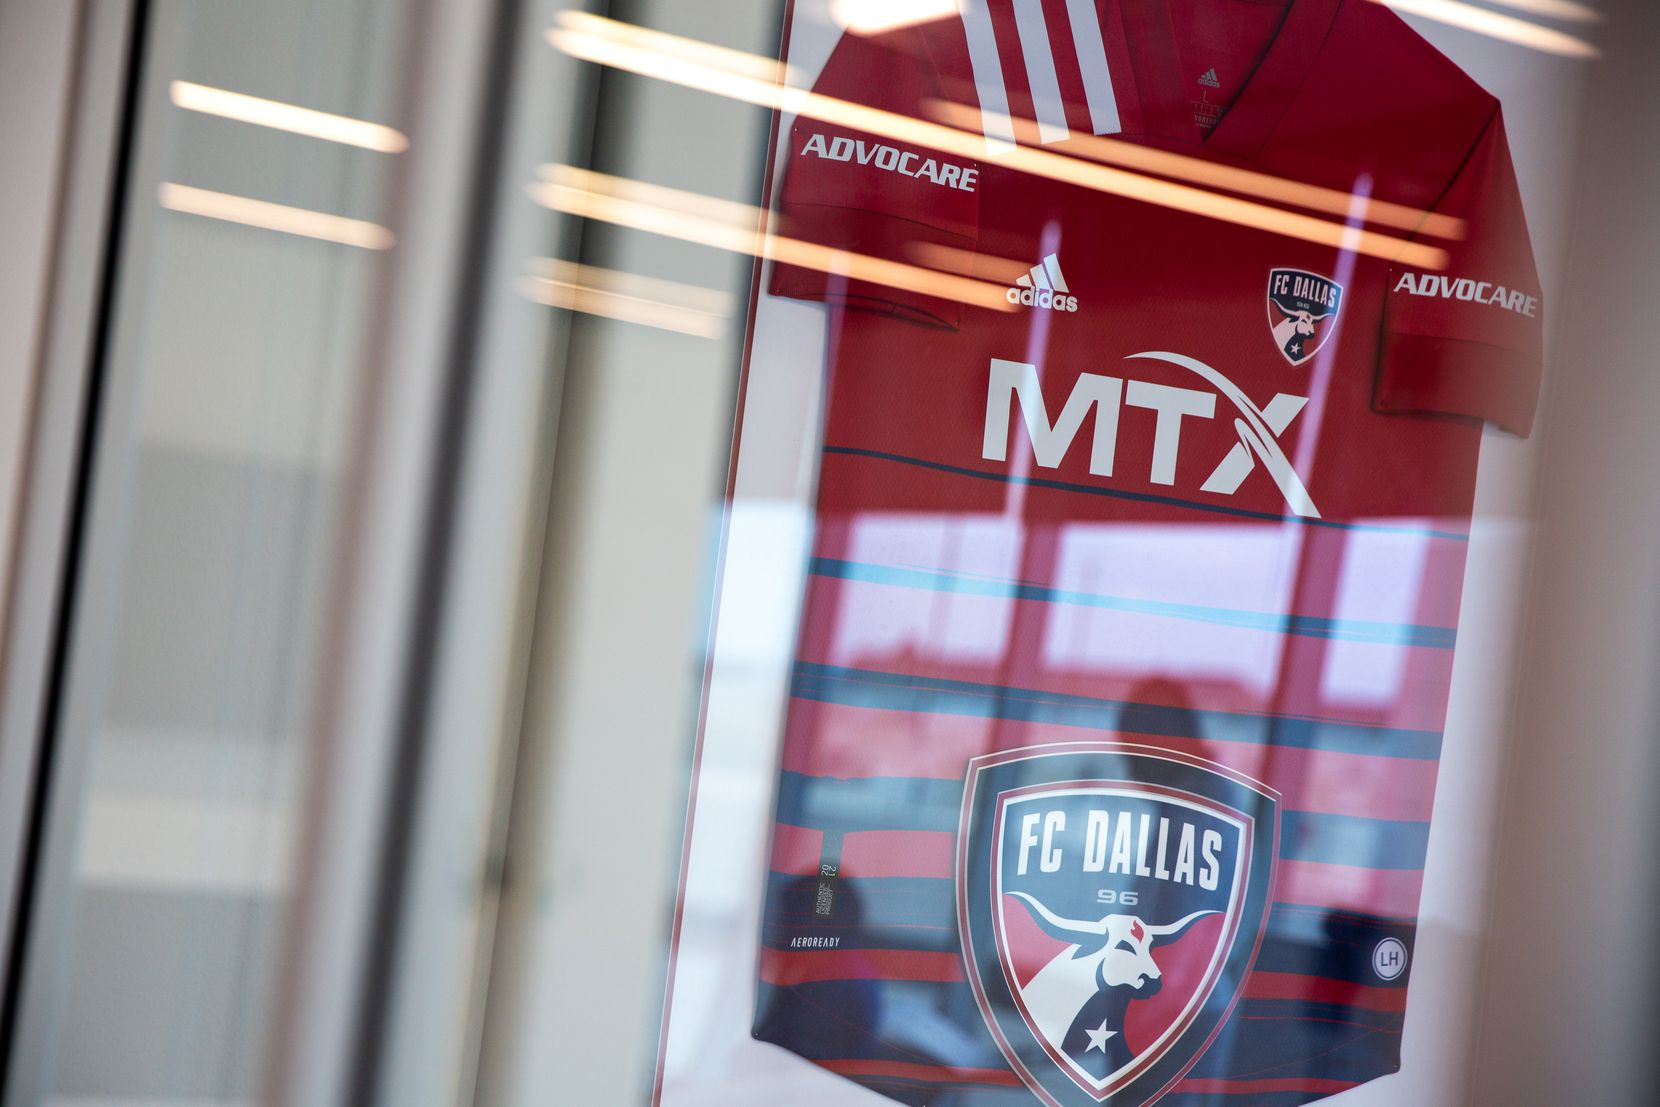 An FC Dallas jersey with the MTX name on it is framed in Nobel's Frisco office. MTX is a team sponsor.